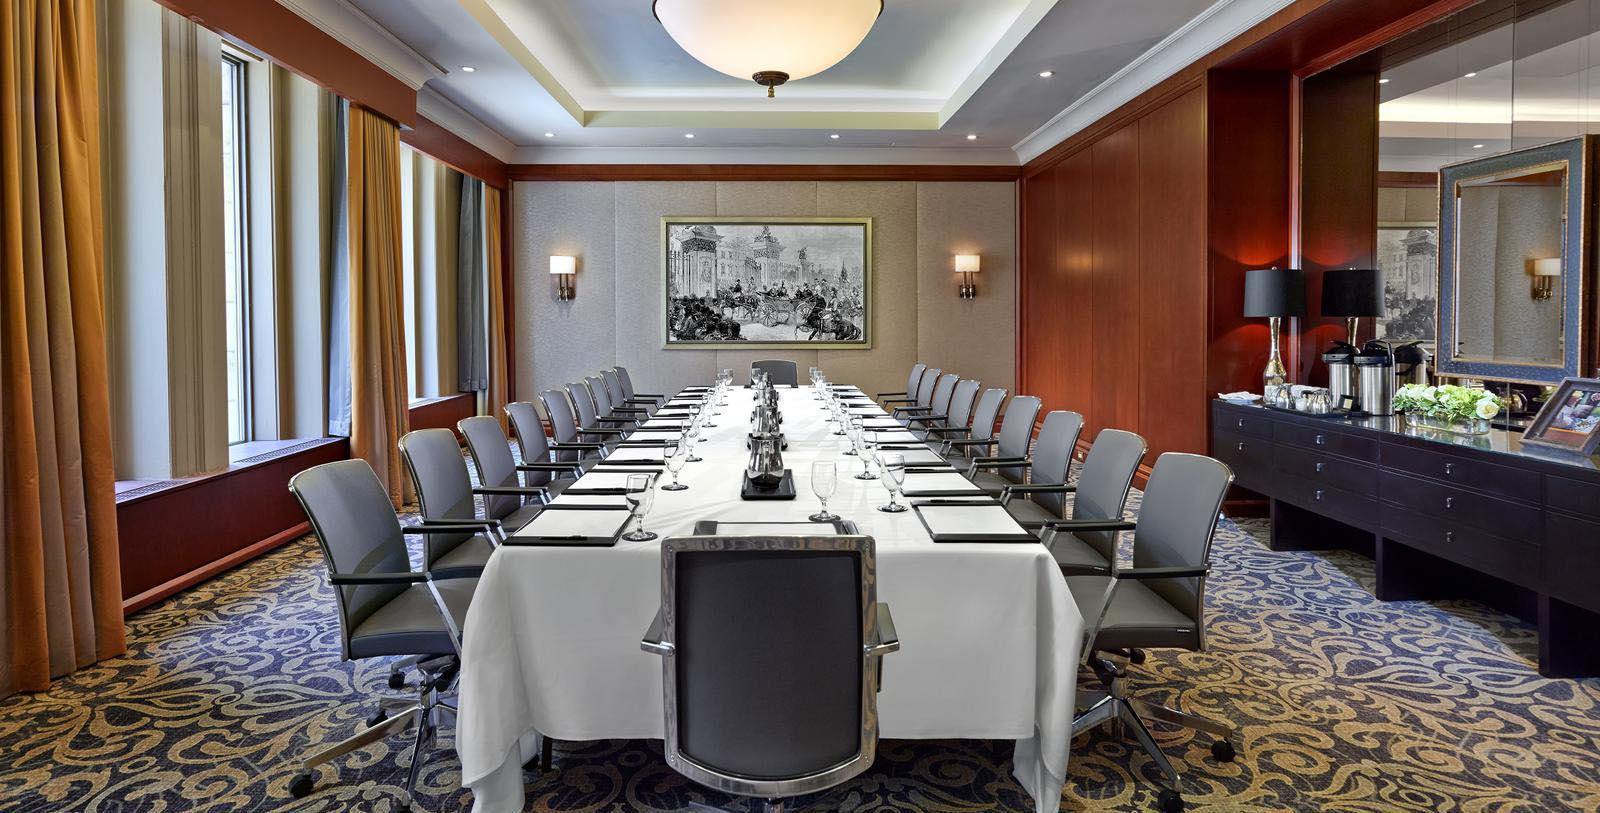 Image of Boardroom at The Omni King Edward Hotel, 1903, Member of Historic Hotels Worldwide, in Toronto, Ontario, Canada, Experience